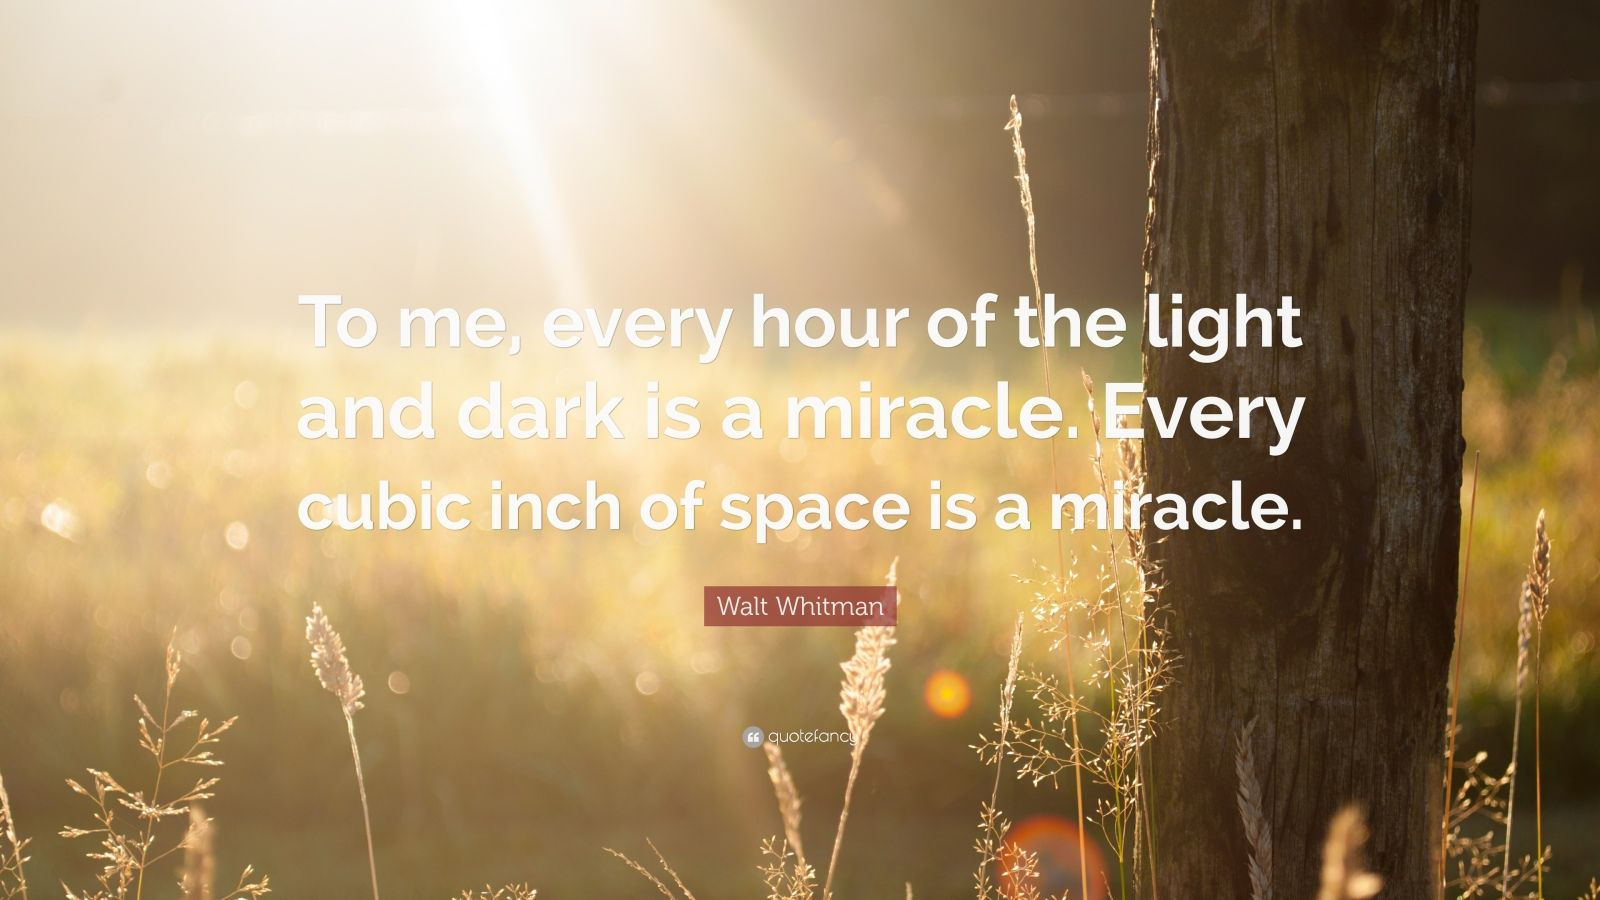 """Walt Whitman Quote: """"To me, every hour of the light and dark is a miracle. Every cubic inch of space is a miracle."""""""